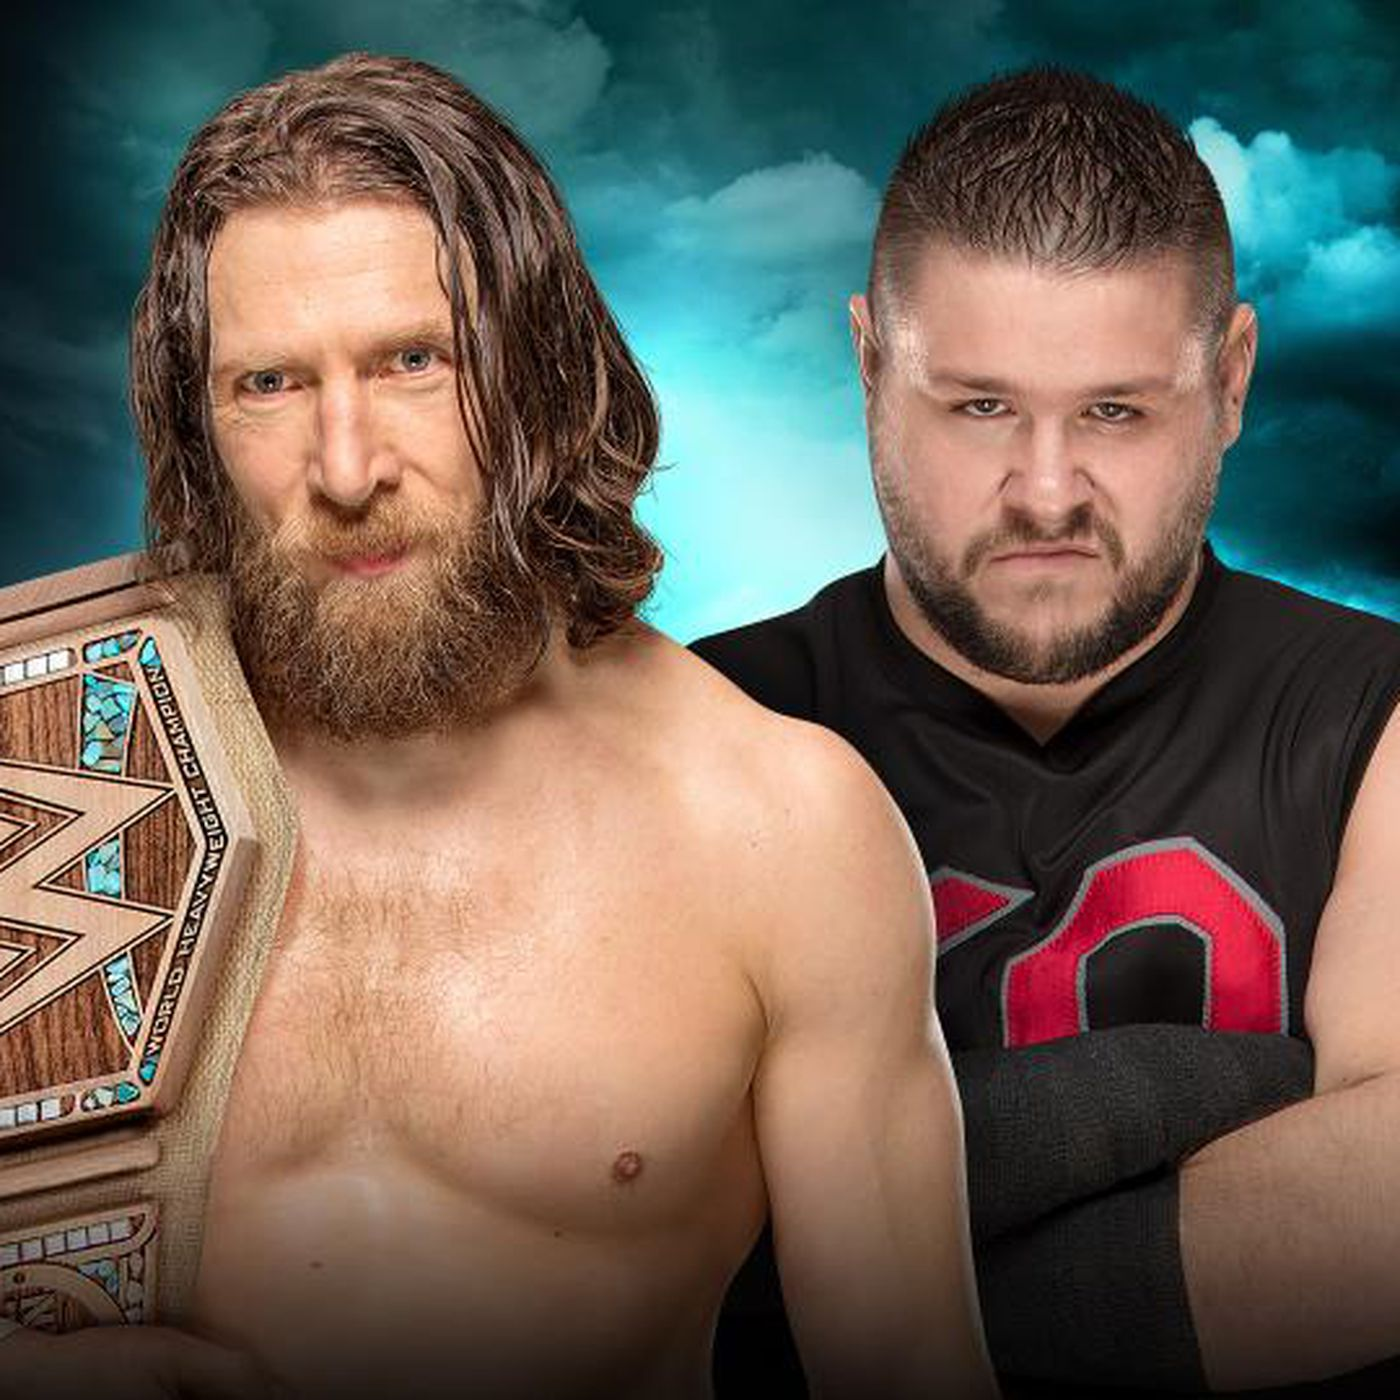 WWE Fastlane 2019 results, live streaming match coverage